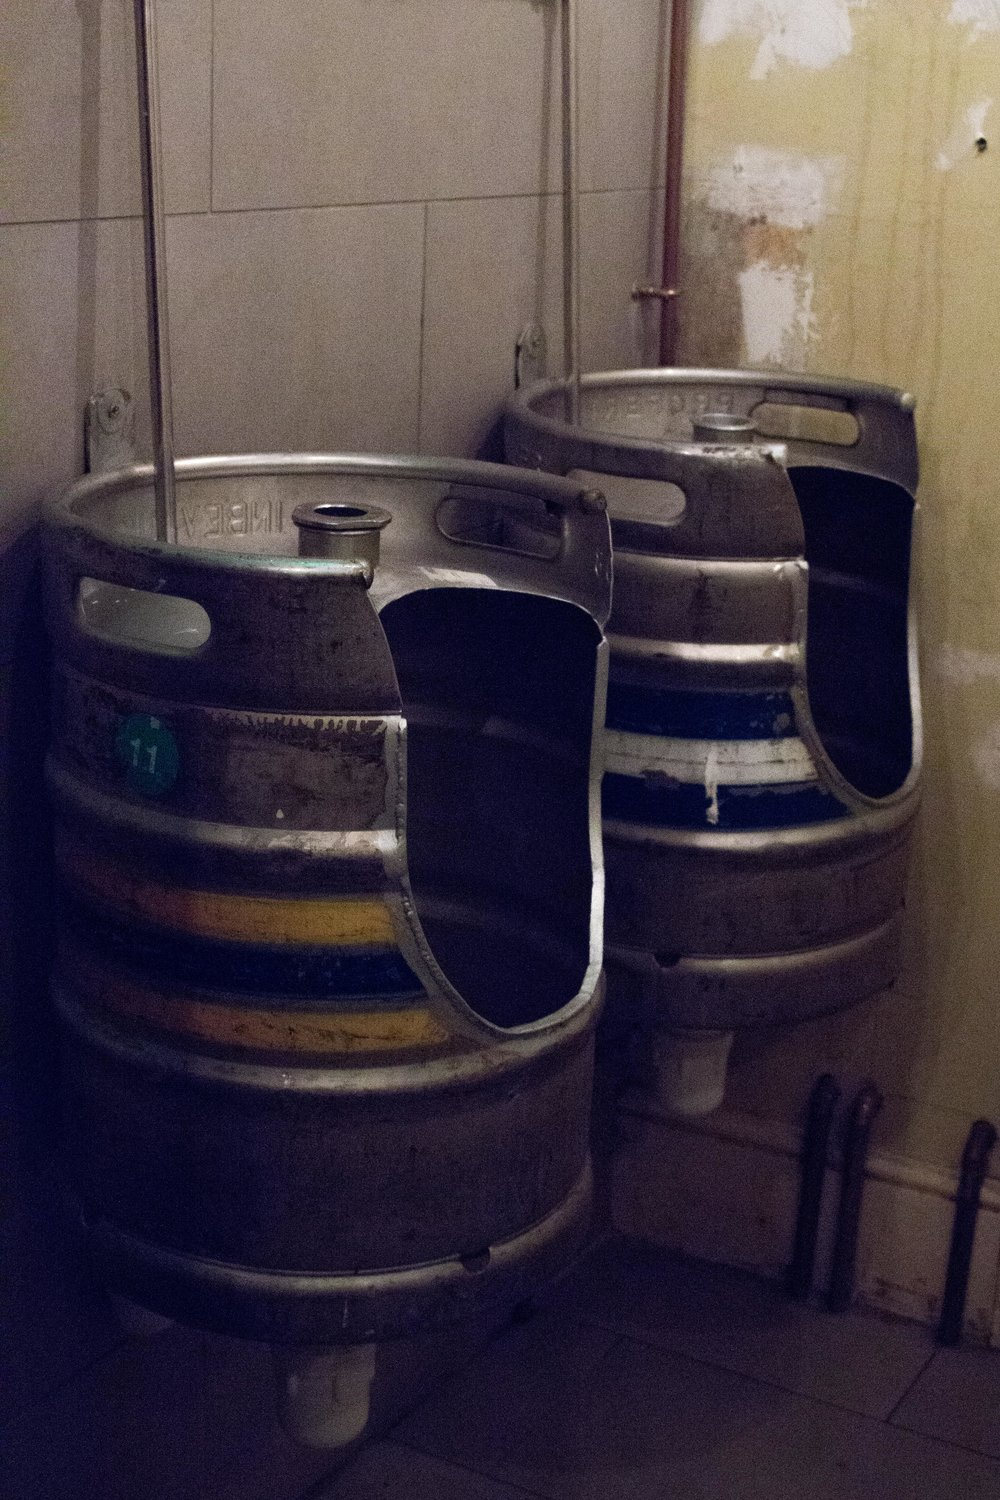 Framptons in Tunbridge Wells - Beer barrels are cleverly repurposed as urinals in the men's loo – Phoebe Oldrey Interior Design.jpg